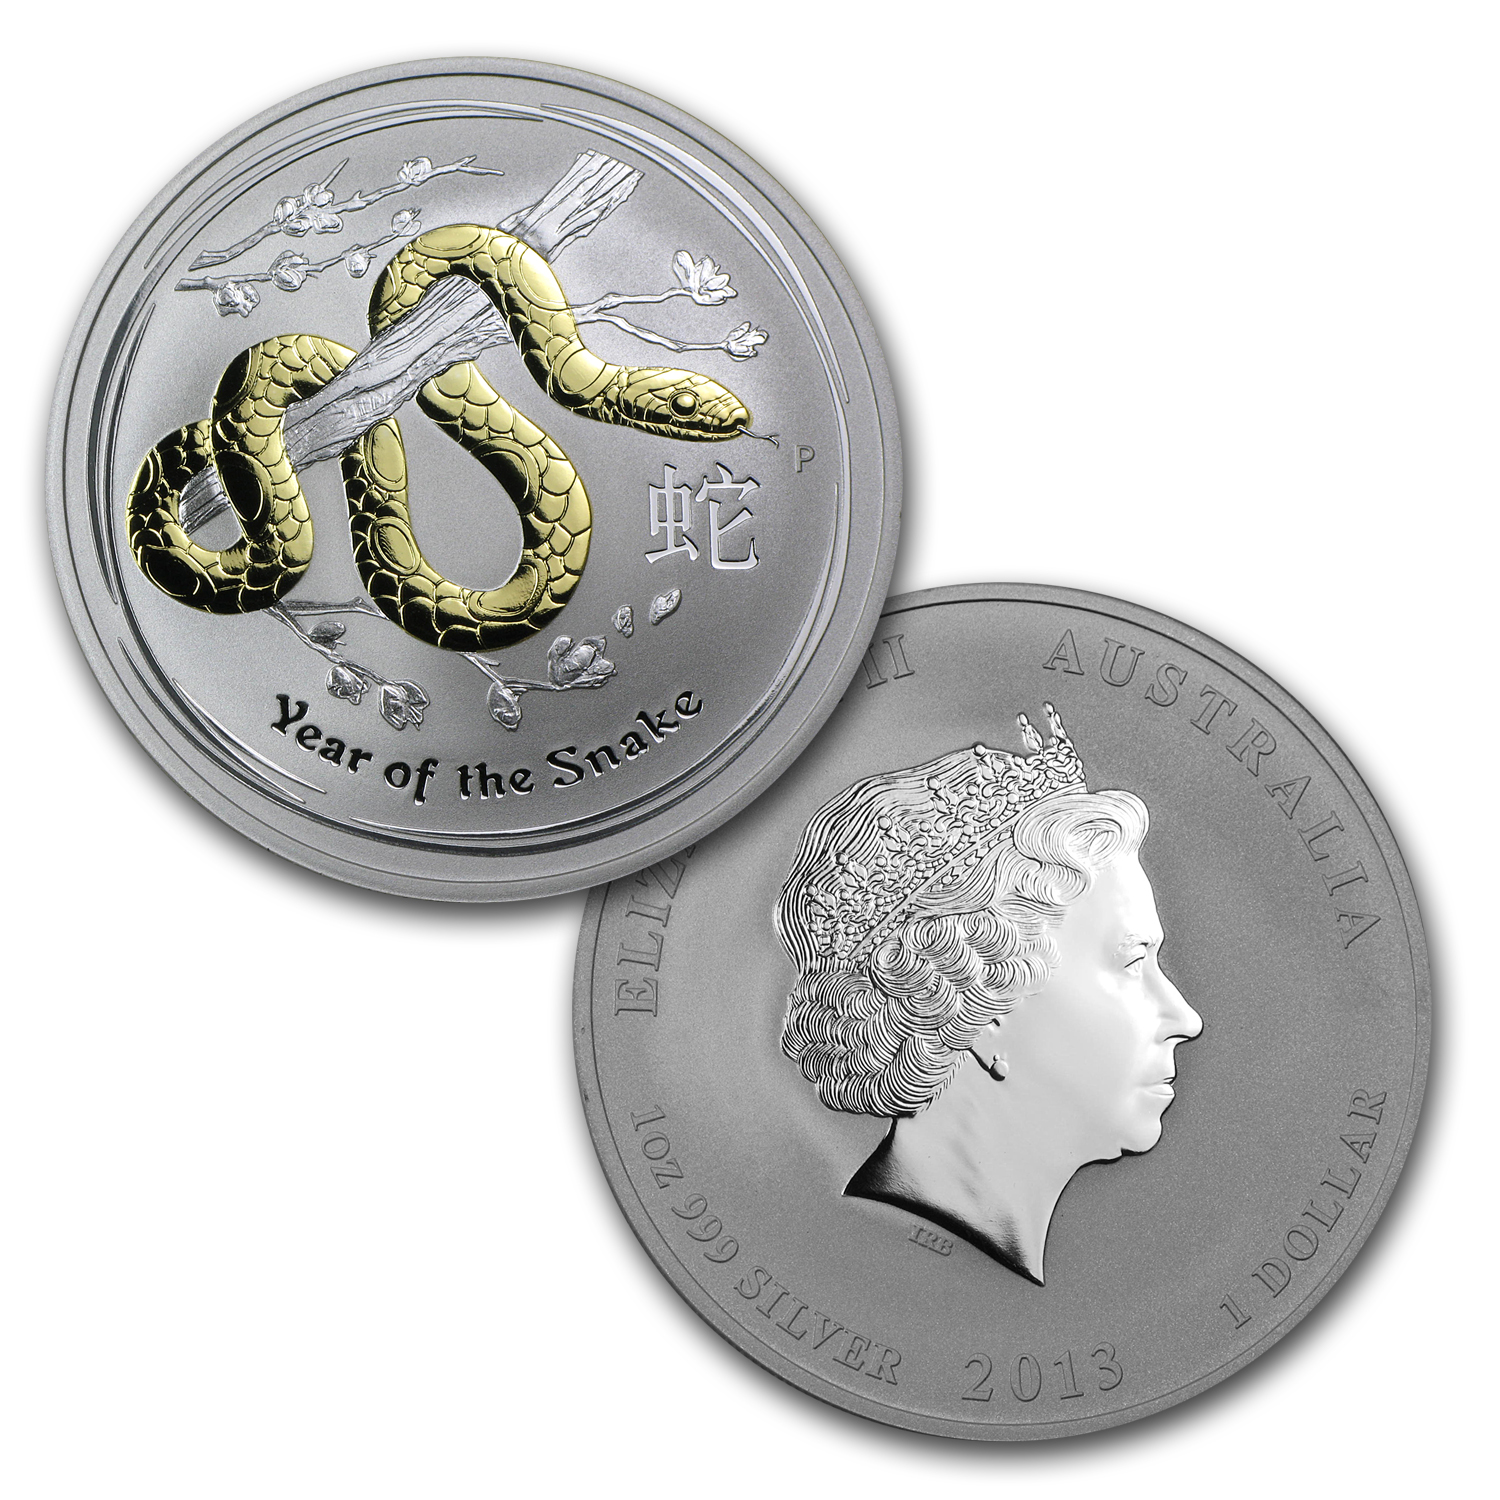 2013 4-Coin Australia 1 oz Silver Year of the Snake Type Set